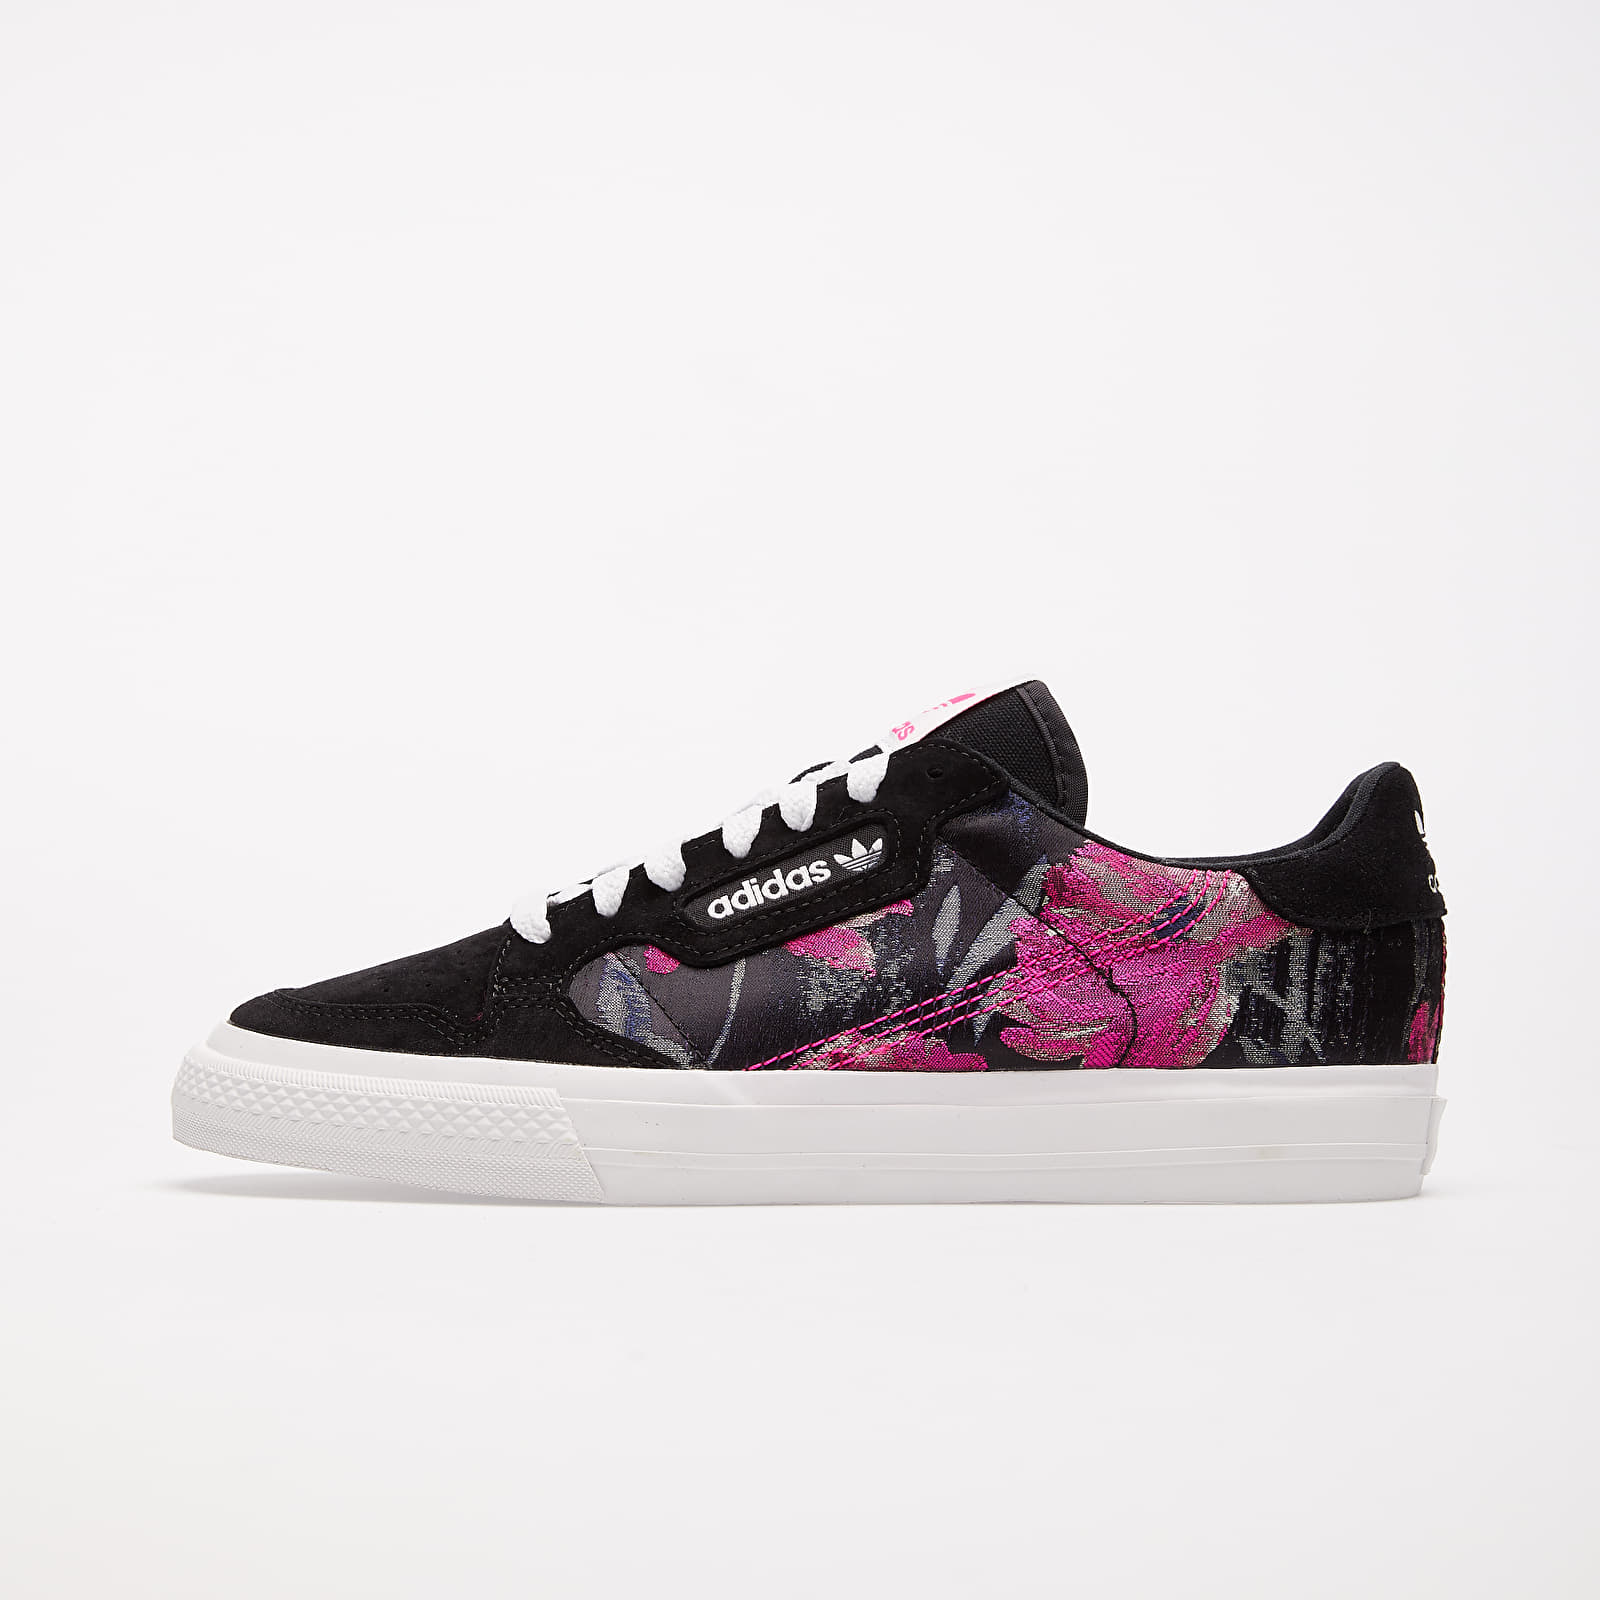 Frauen adidas Continental Vulc W Core Black/ Crystal White/ Shock Pink